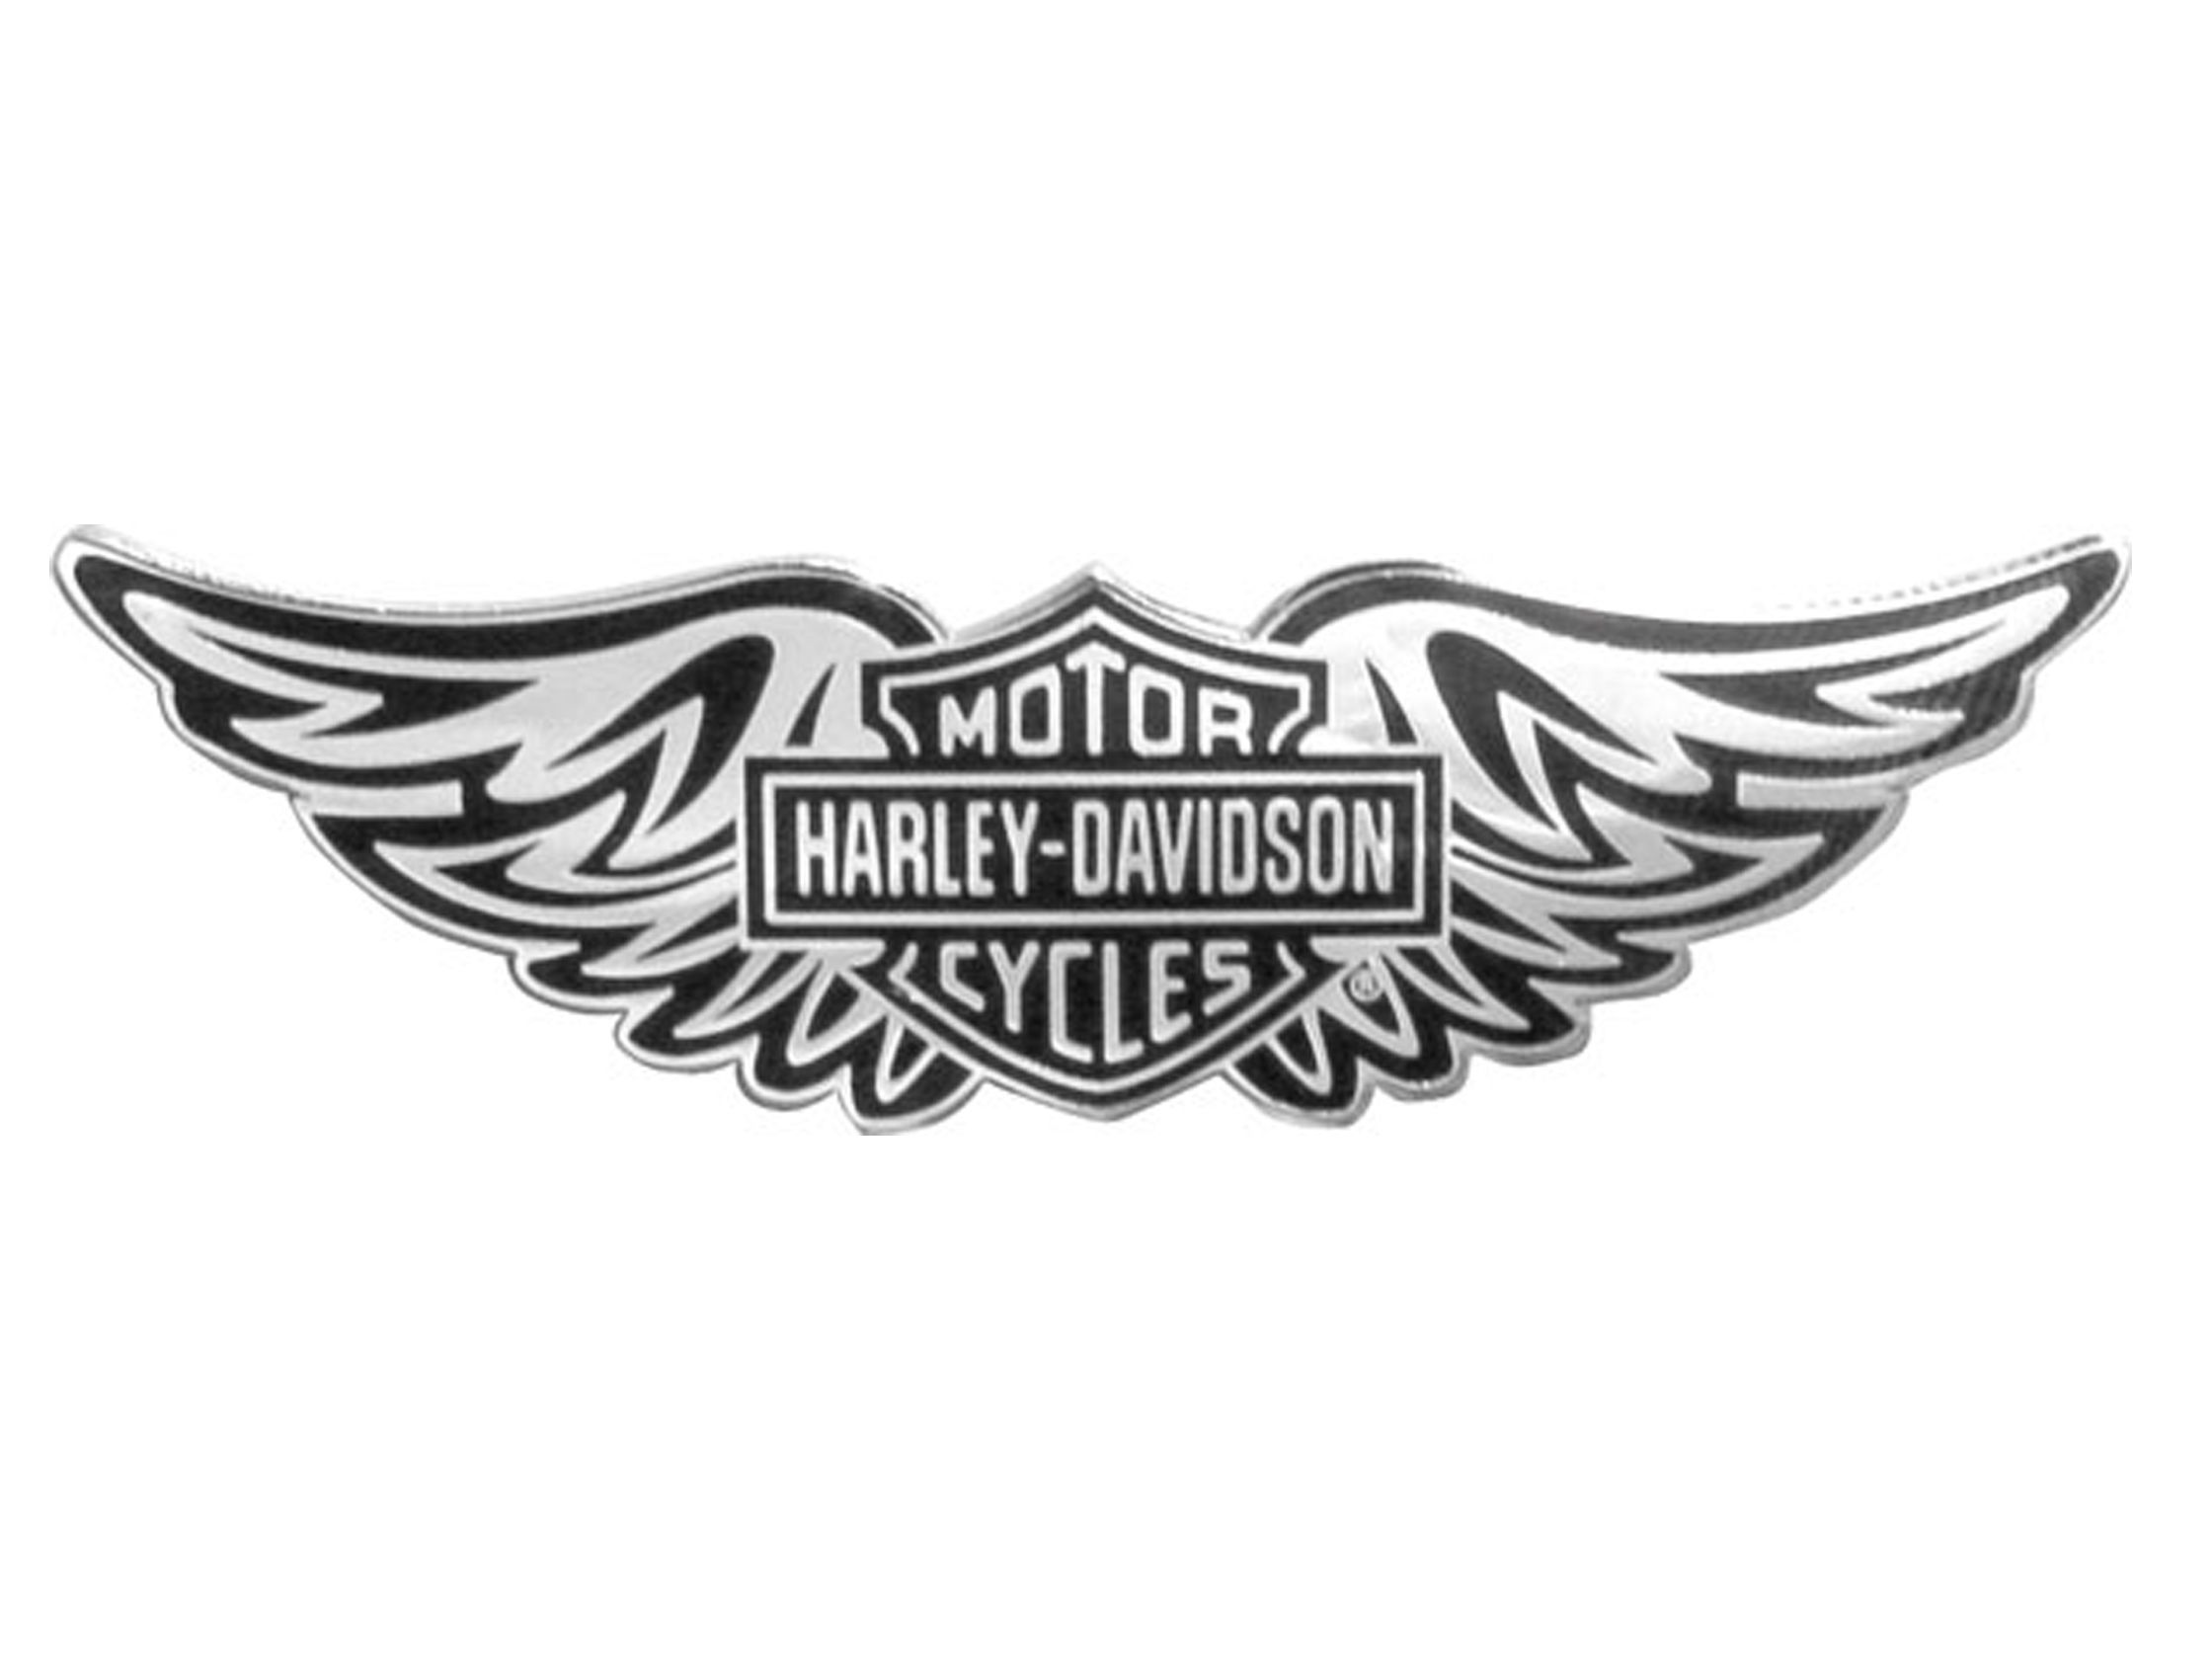 Animals For Harley Davidson Eagle Logo Black And White Harley Davidson Images Harley Davidson Logo Harley Davidson Wallpaper